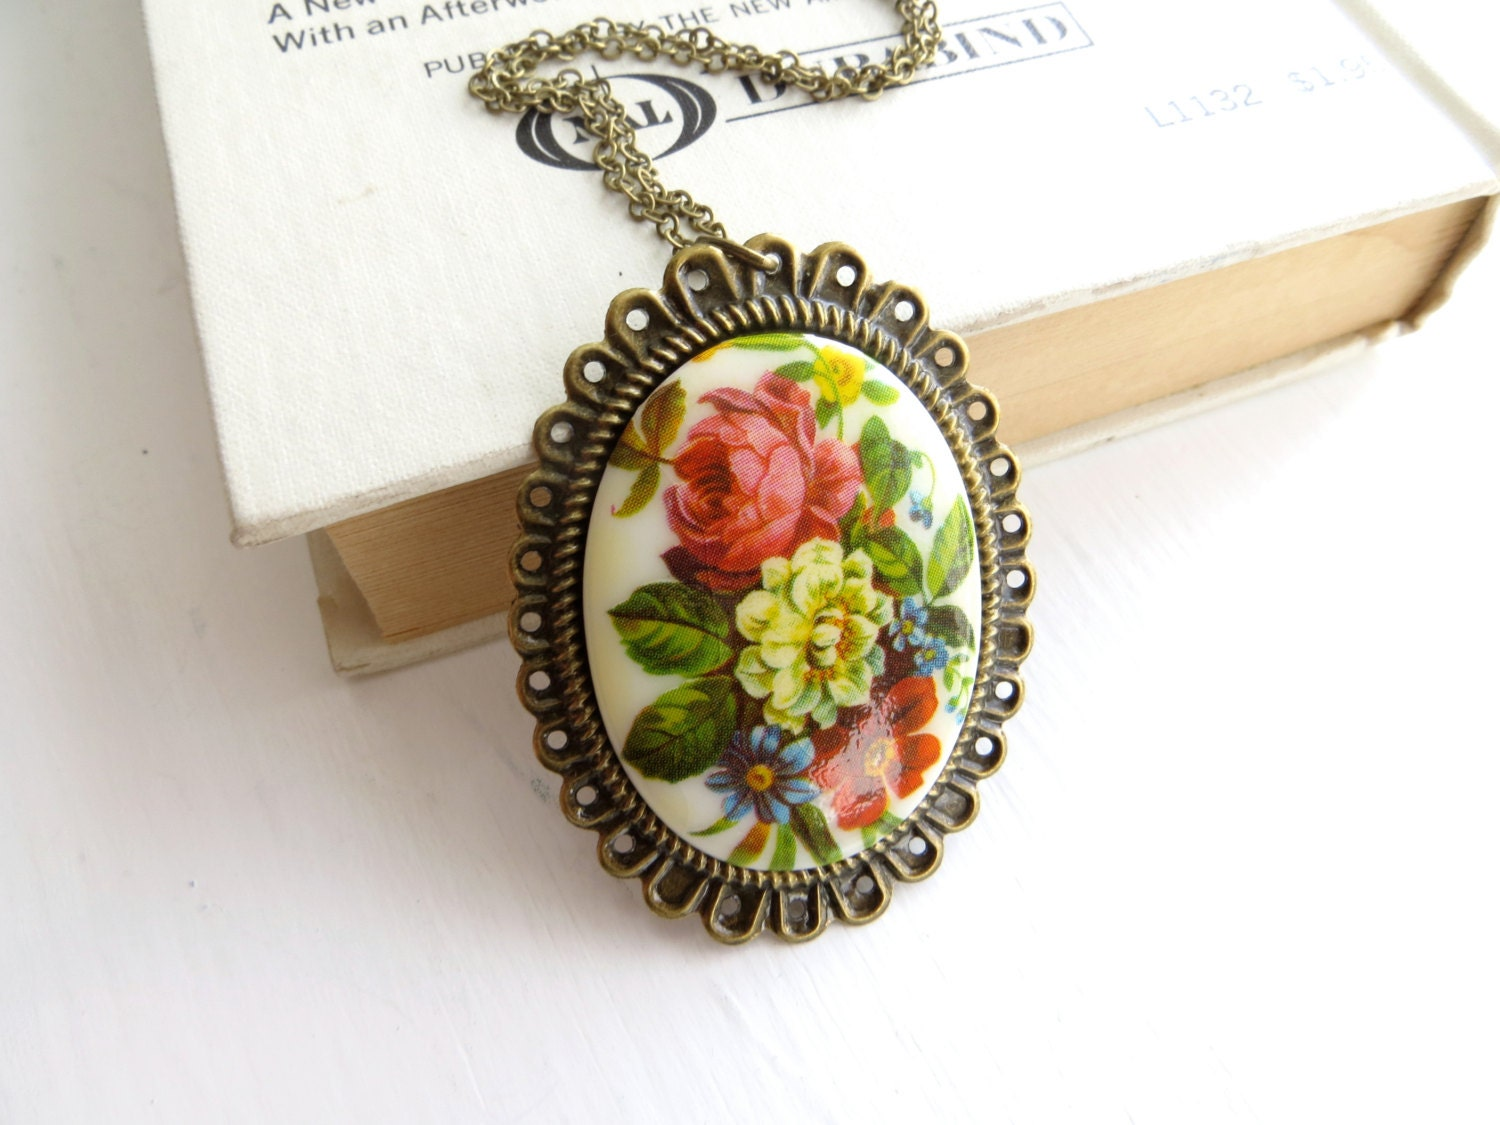 Vintage Flower Necklace - long necklace, cameo, garden, spring, neutrals